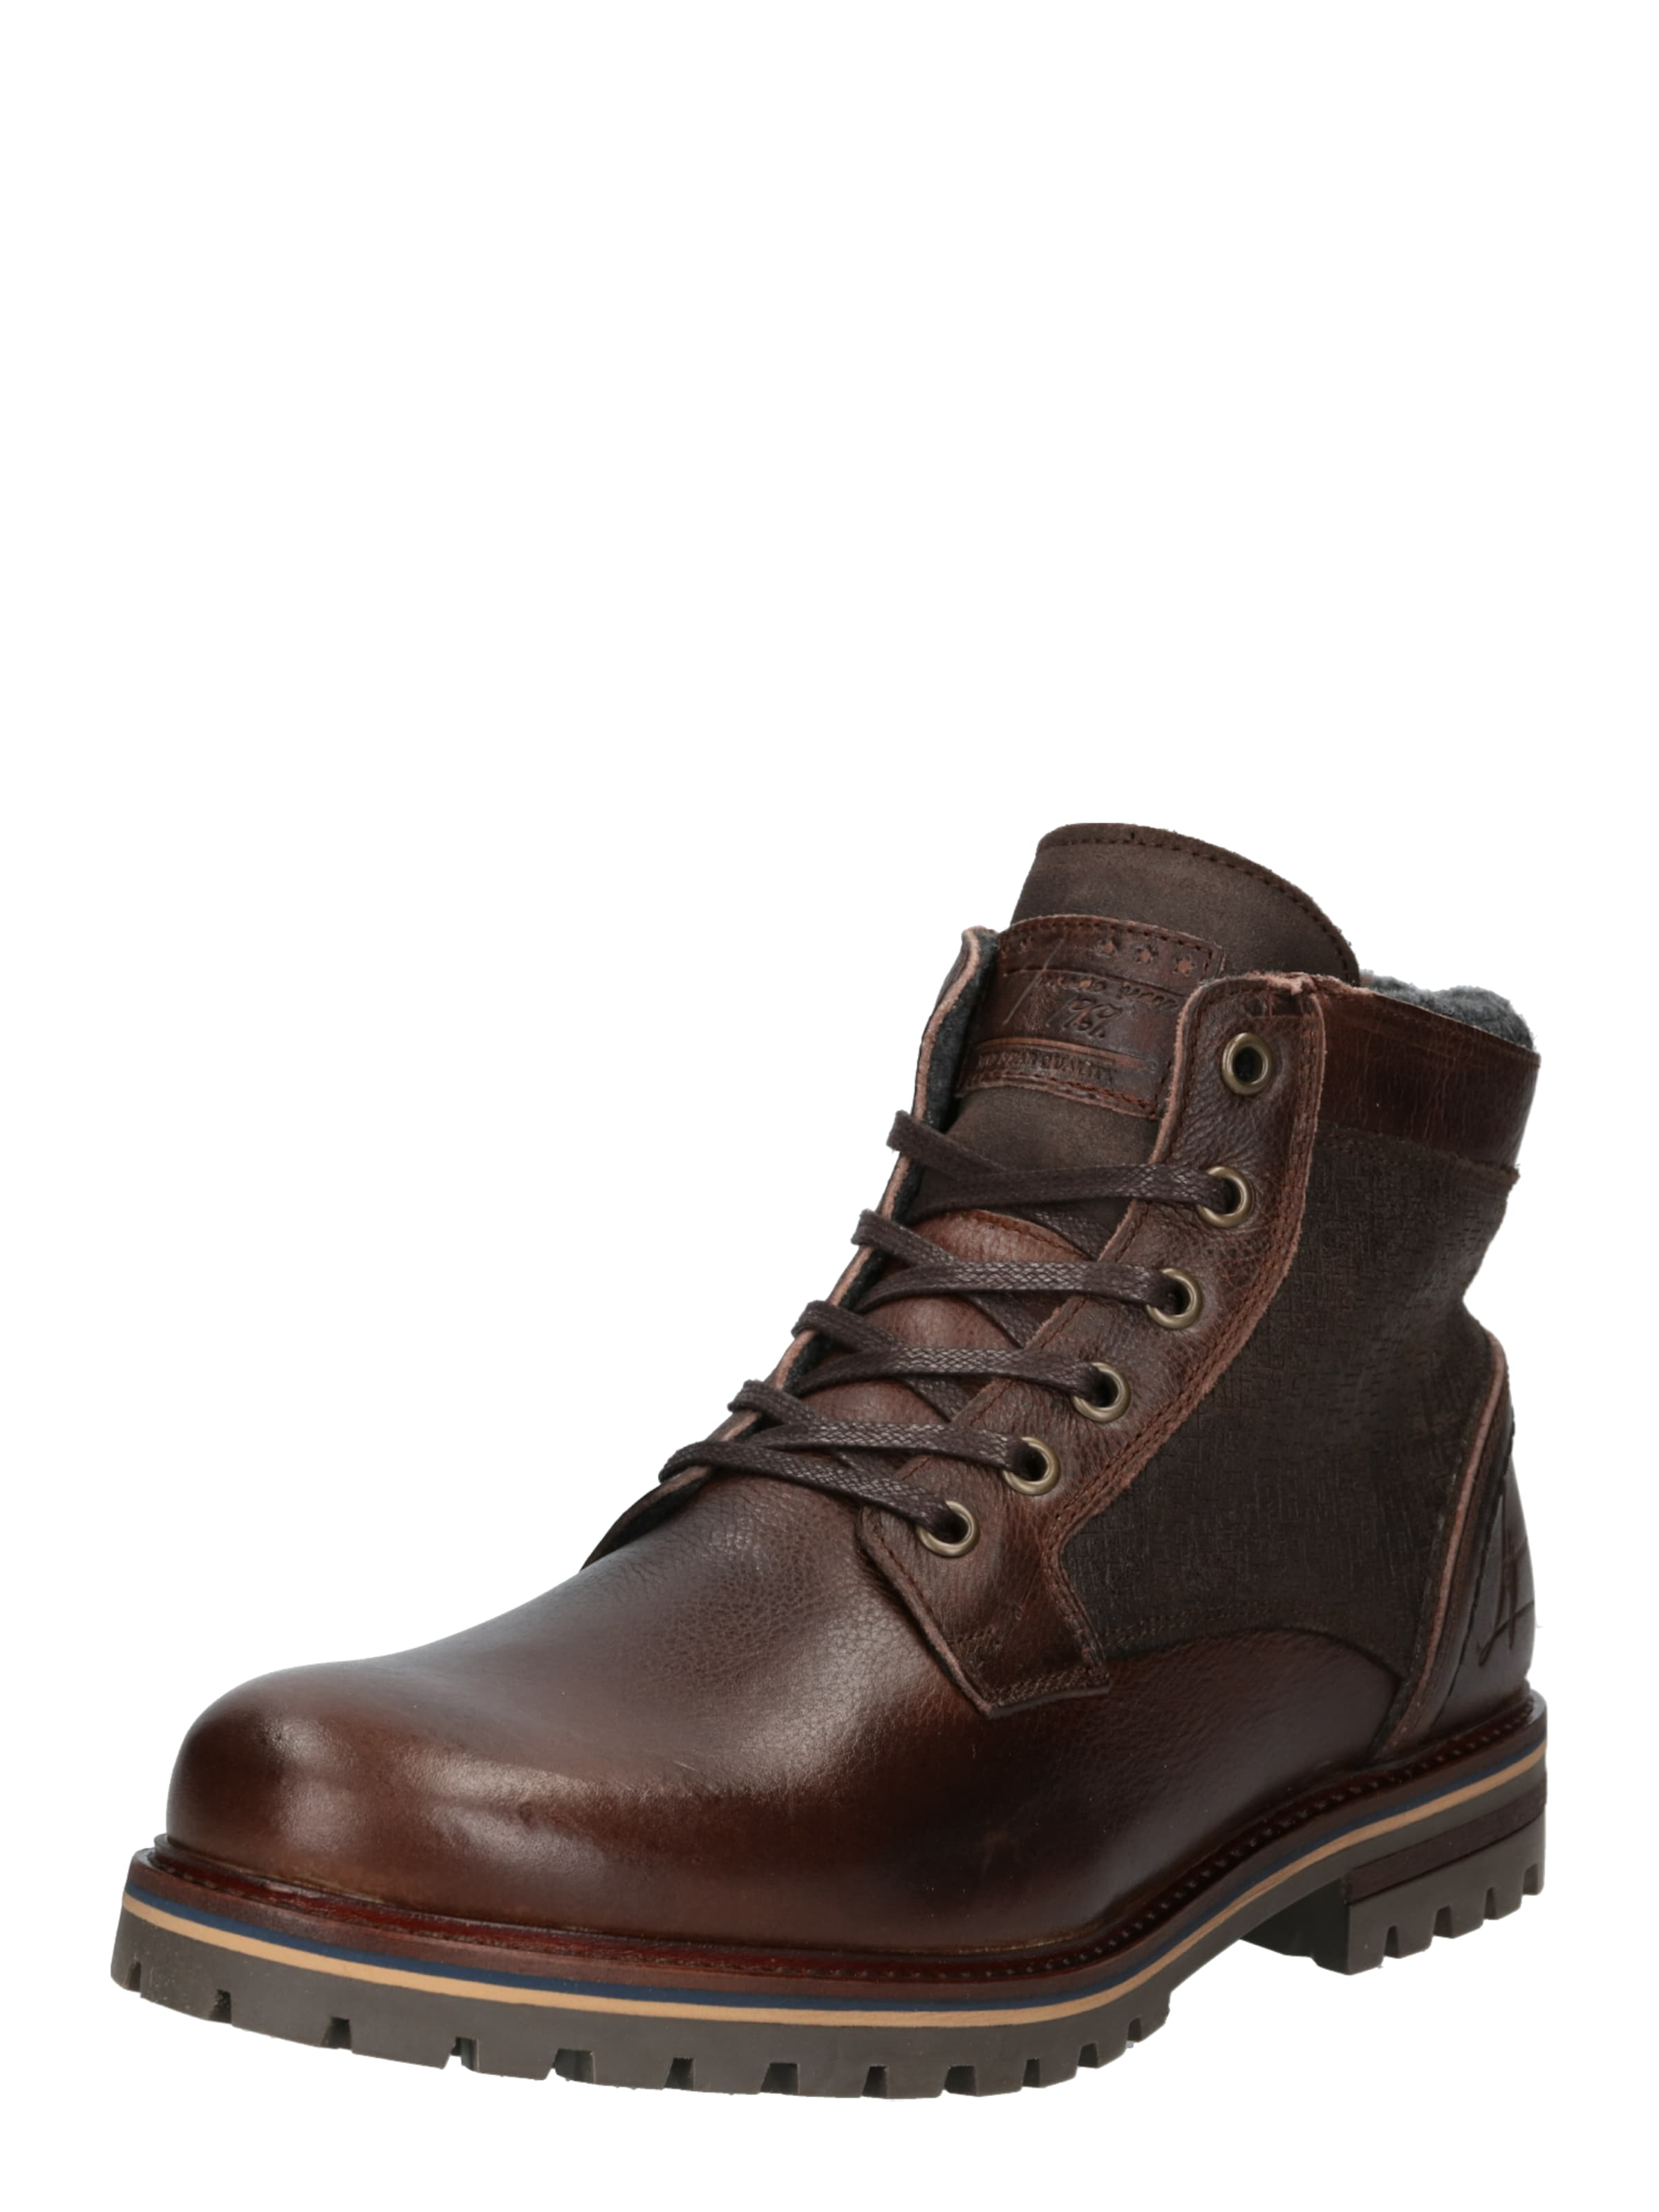 Dunkelbraun Bullboxer Stiefel In In Stiefel Dunkelbraun Stiefel In Bullboxer Dunkelbraun Bullboxer DHYWE2I9